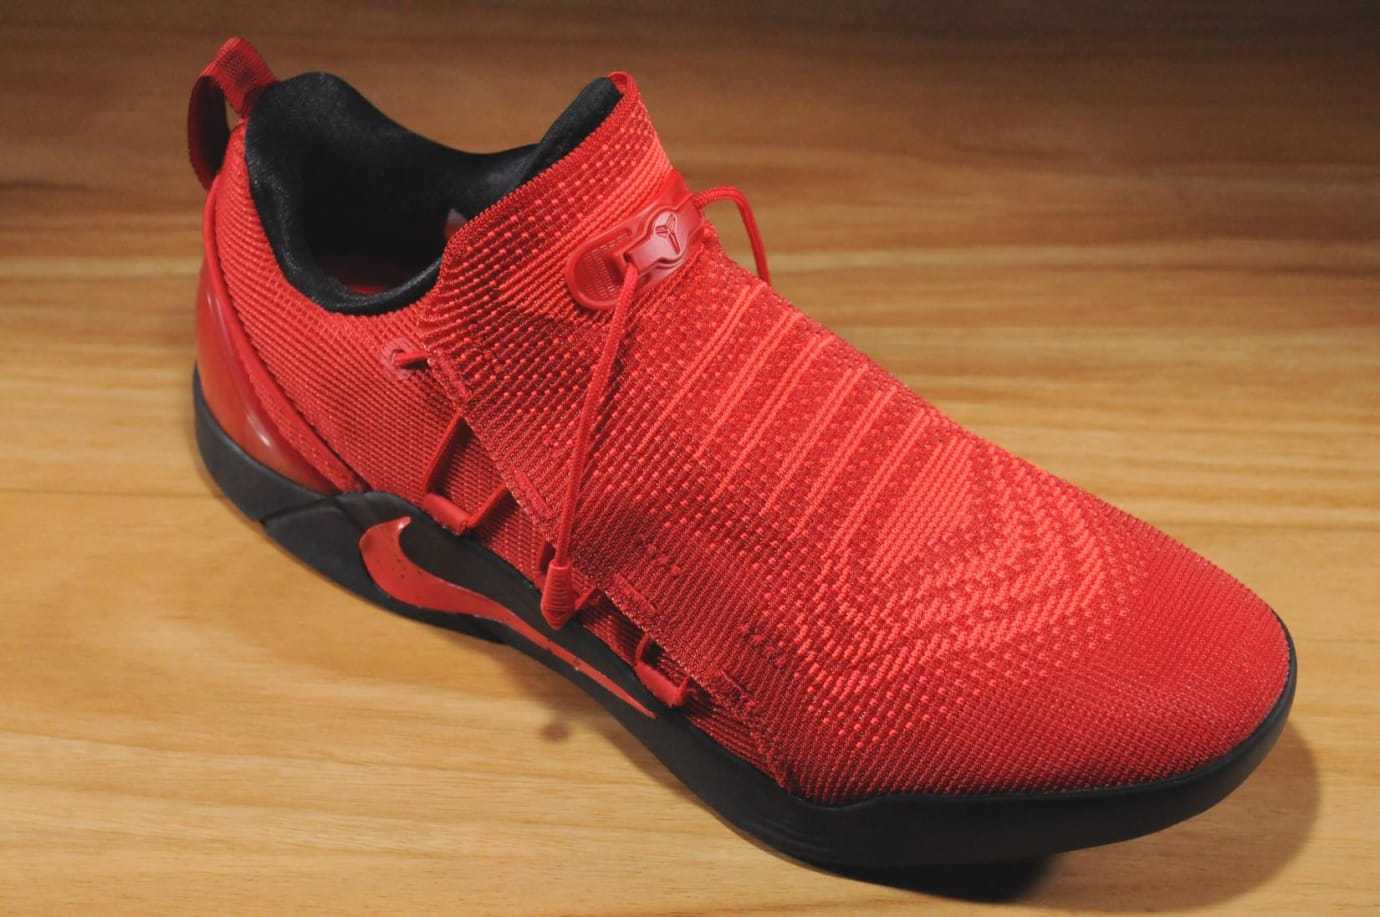 Nike Kobe A.D. NXT University Red Release Date Front 882049-600